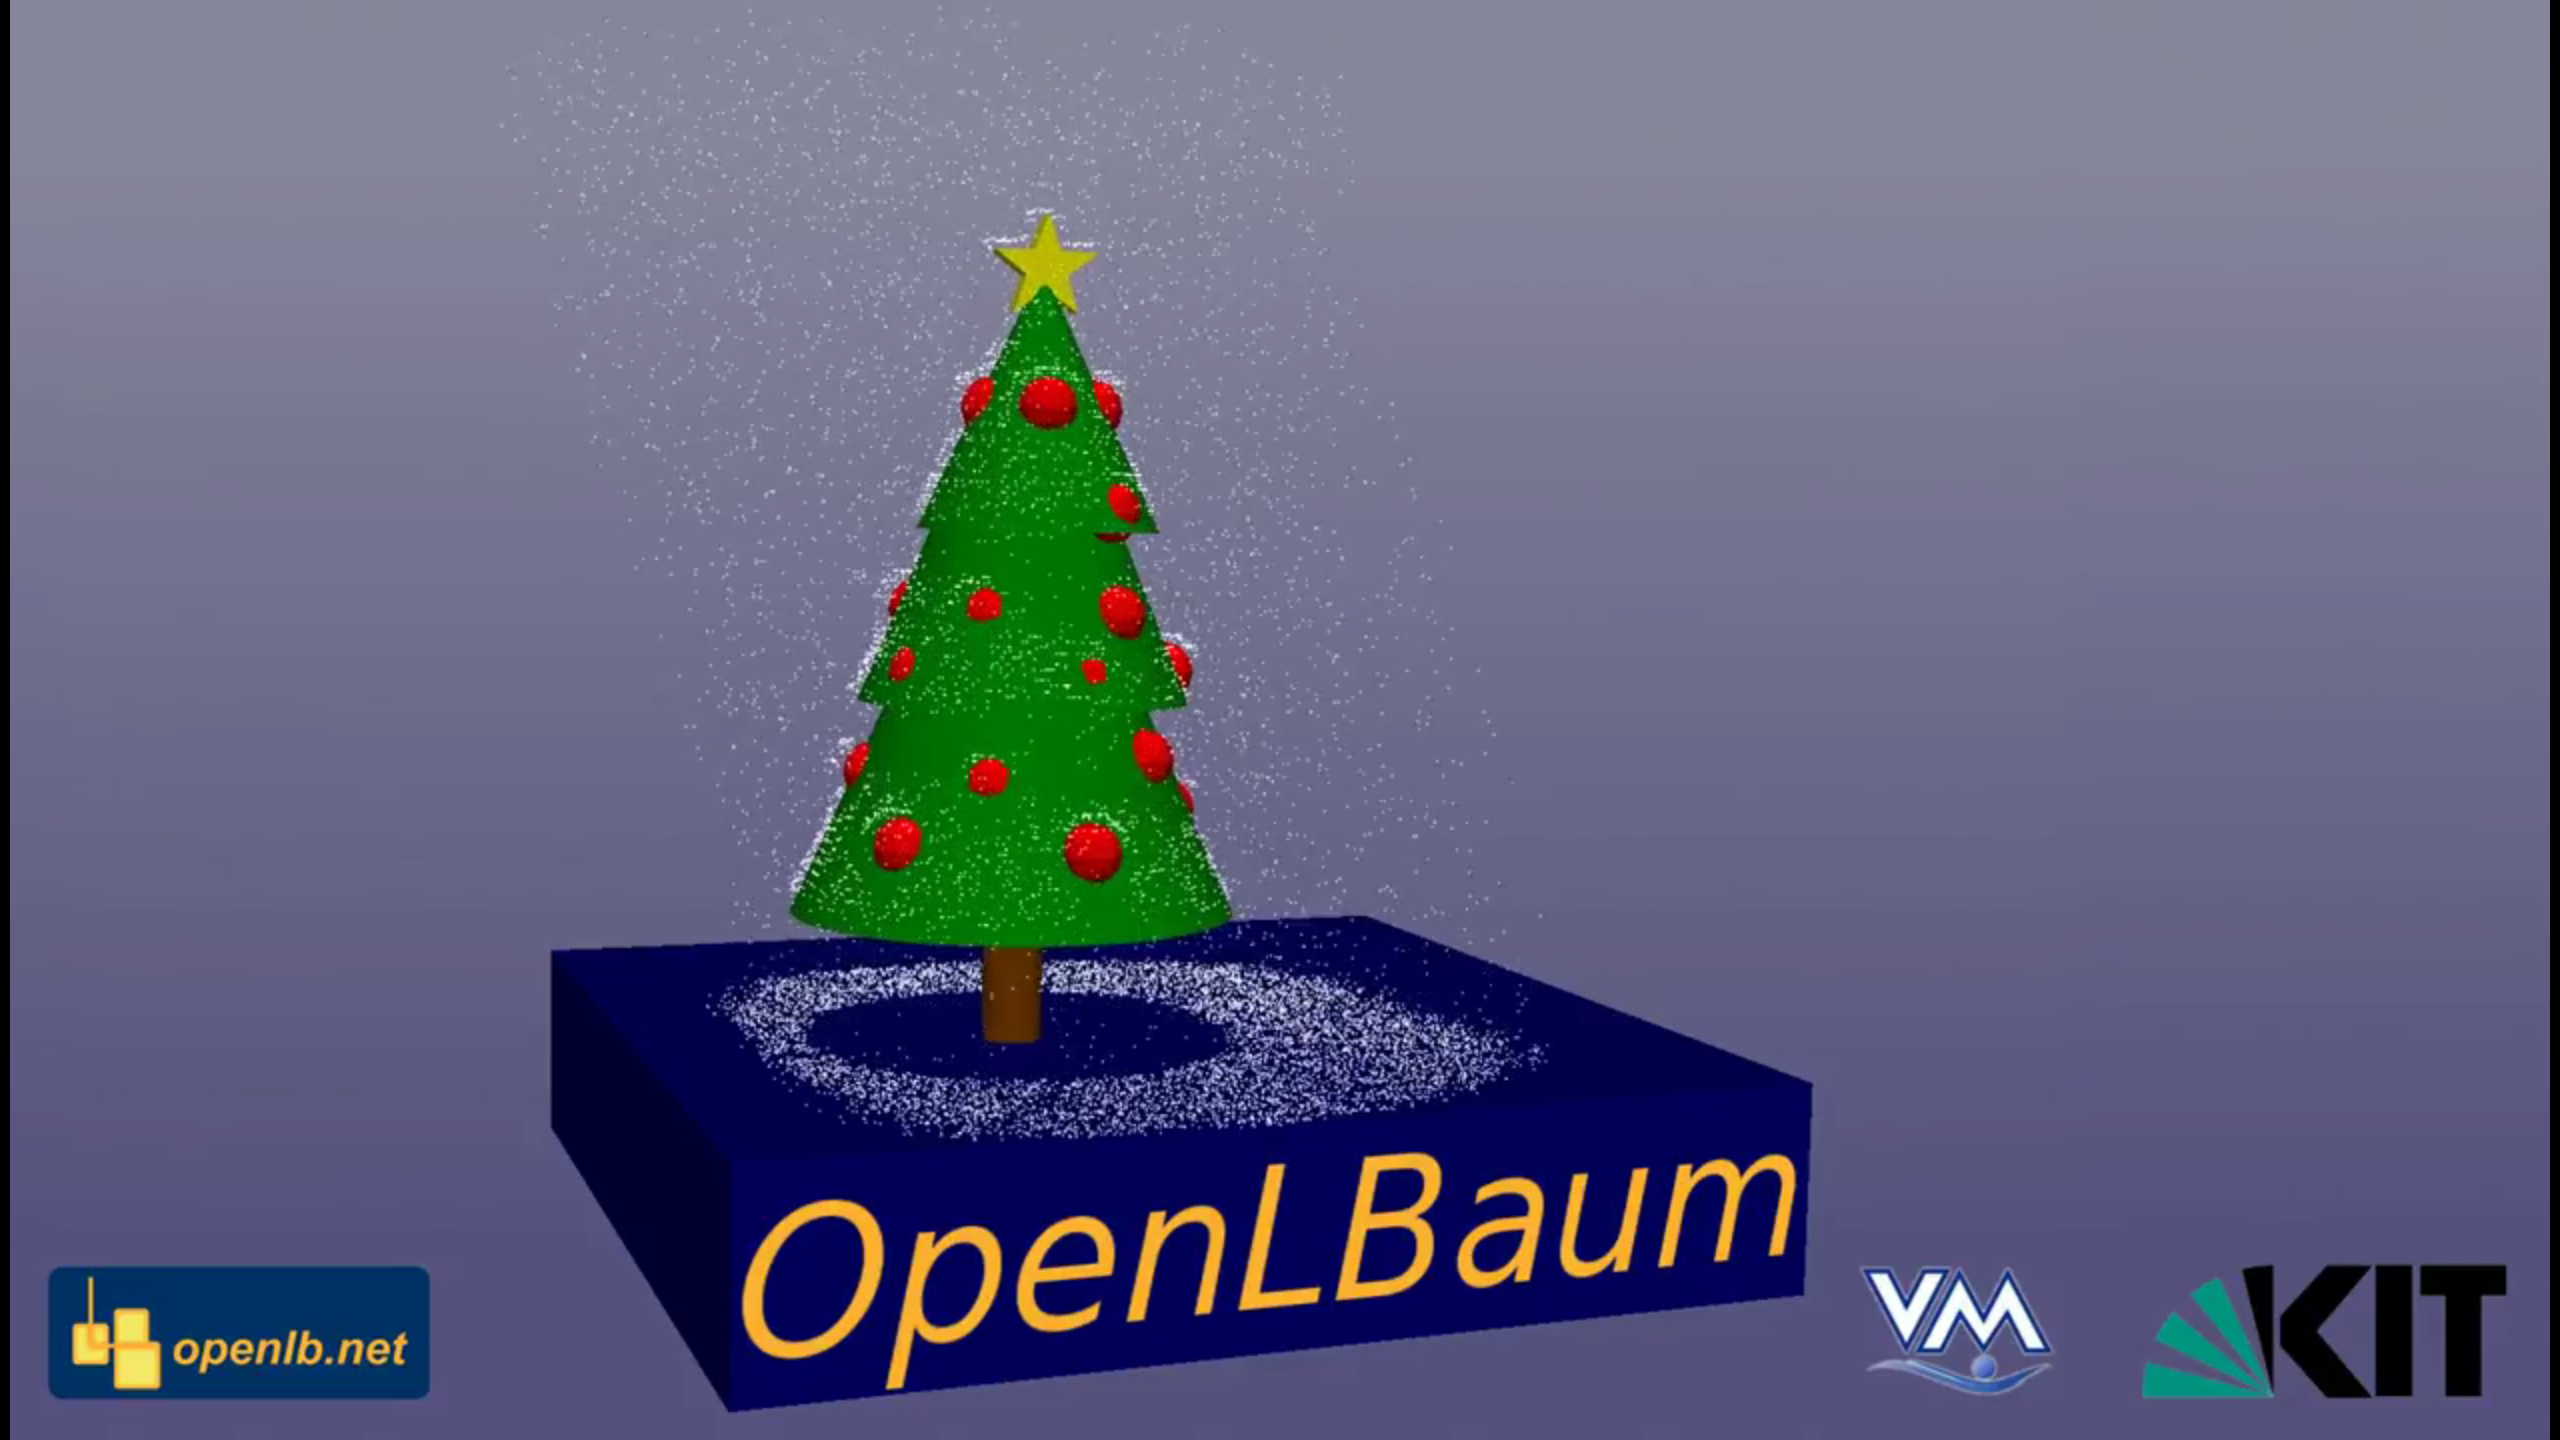 Magic OpenLBaum